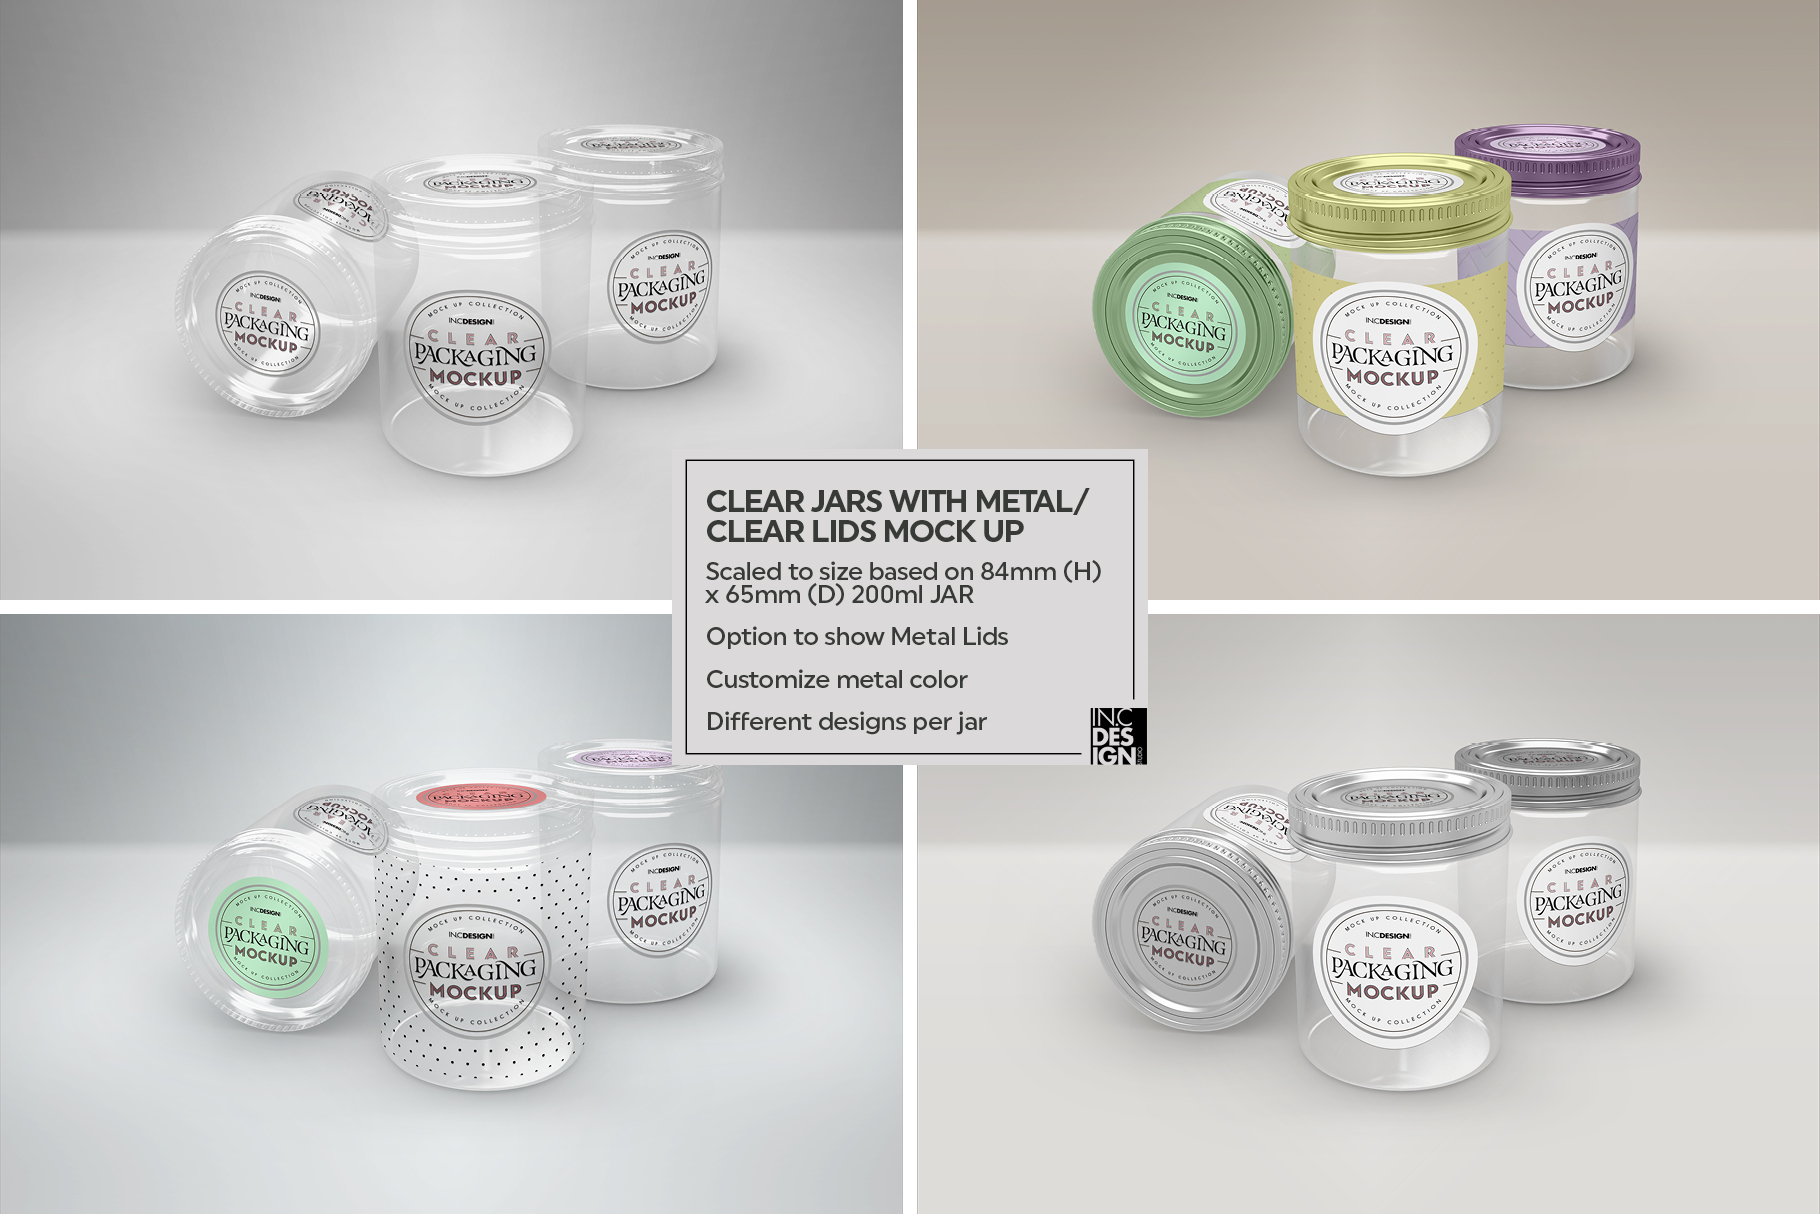 Clear Jars with Metal /Clear Lids Mockup example image 7